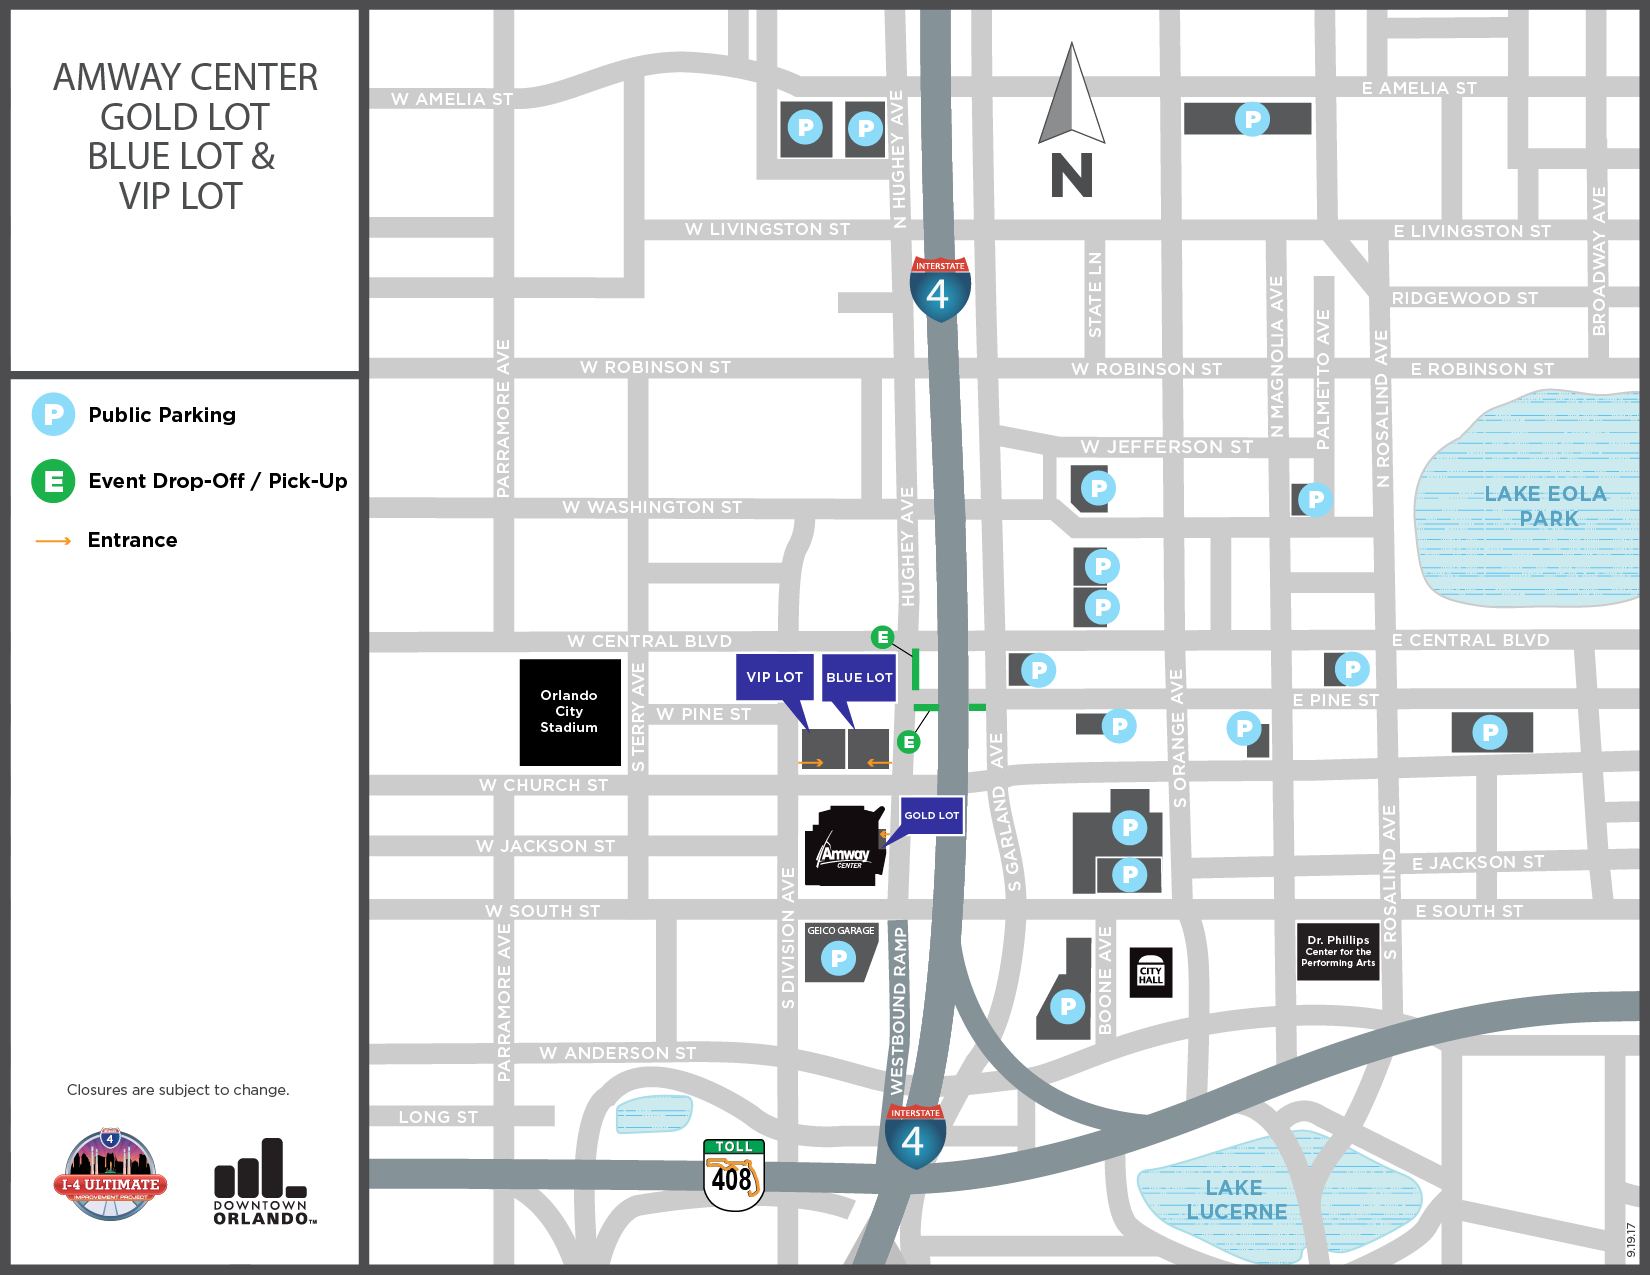 Amway Center Map Amway Center Parking | Amway Center